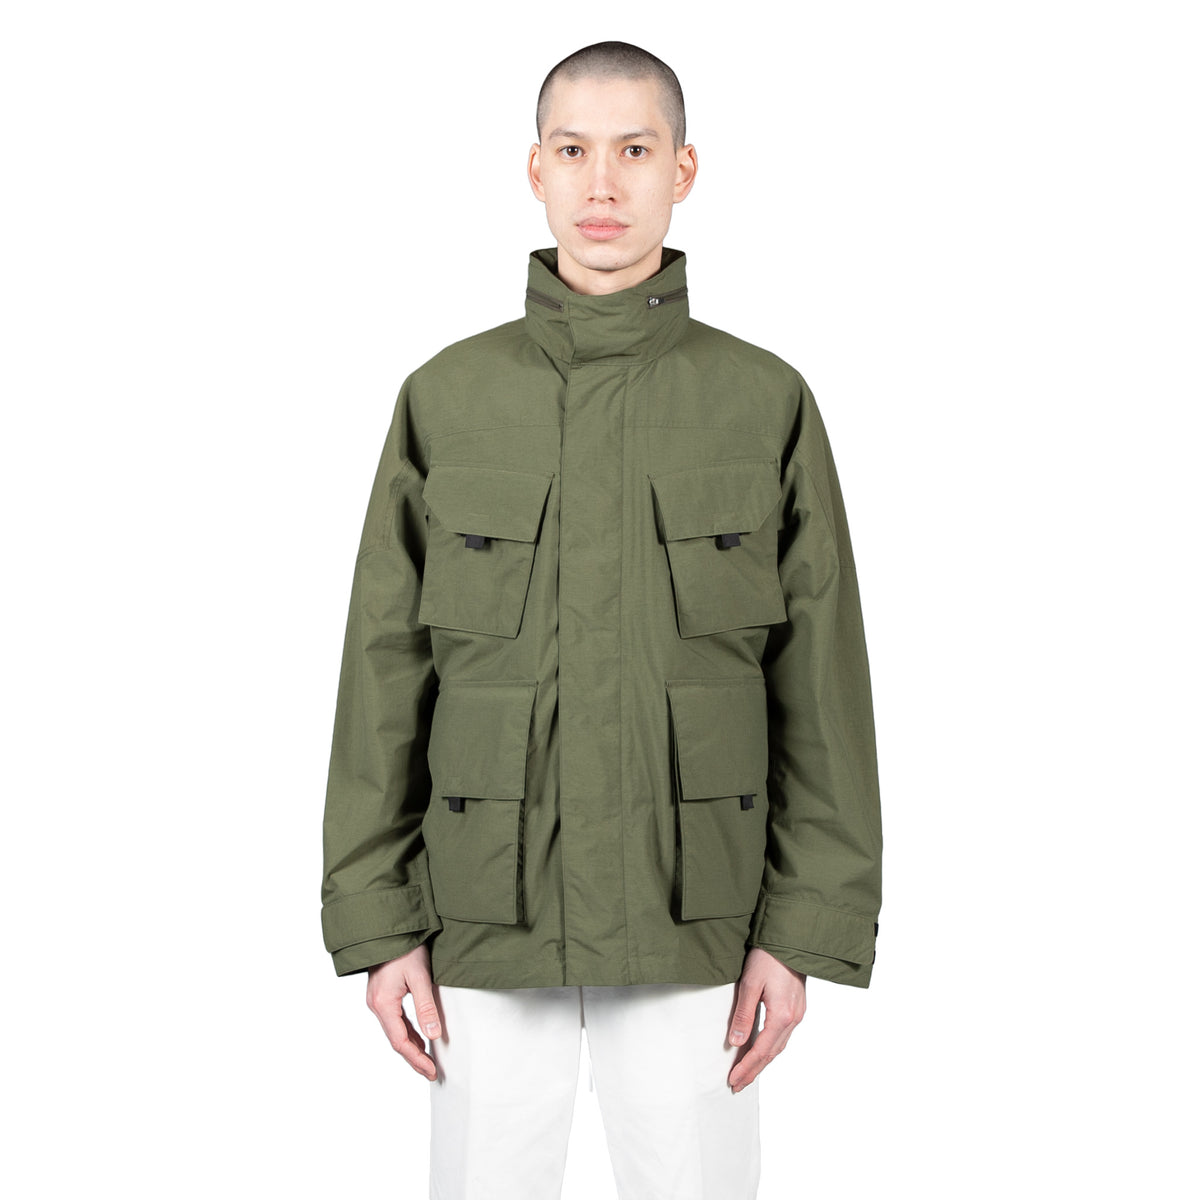 goldwin traveler blouson in Olive